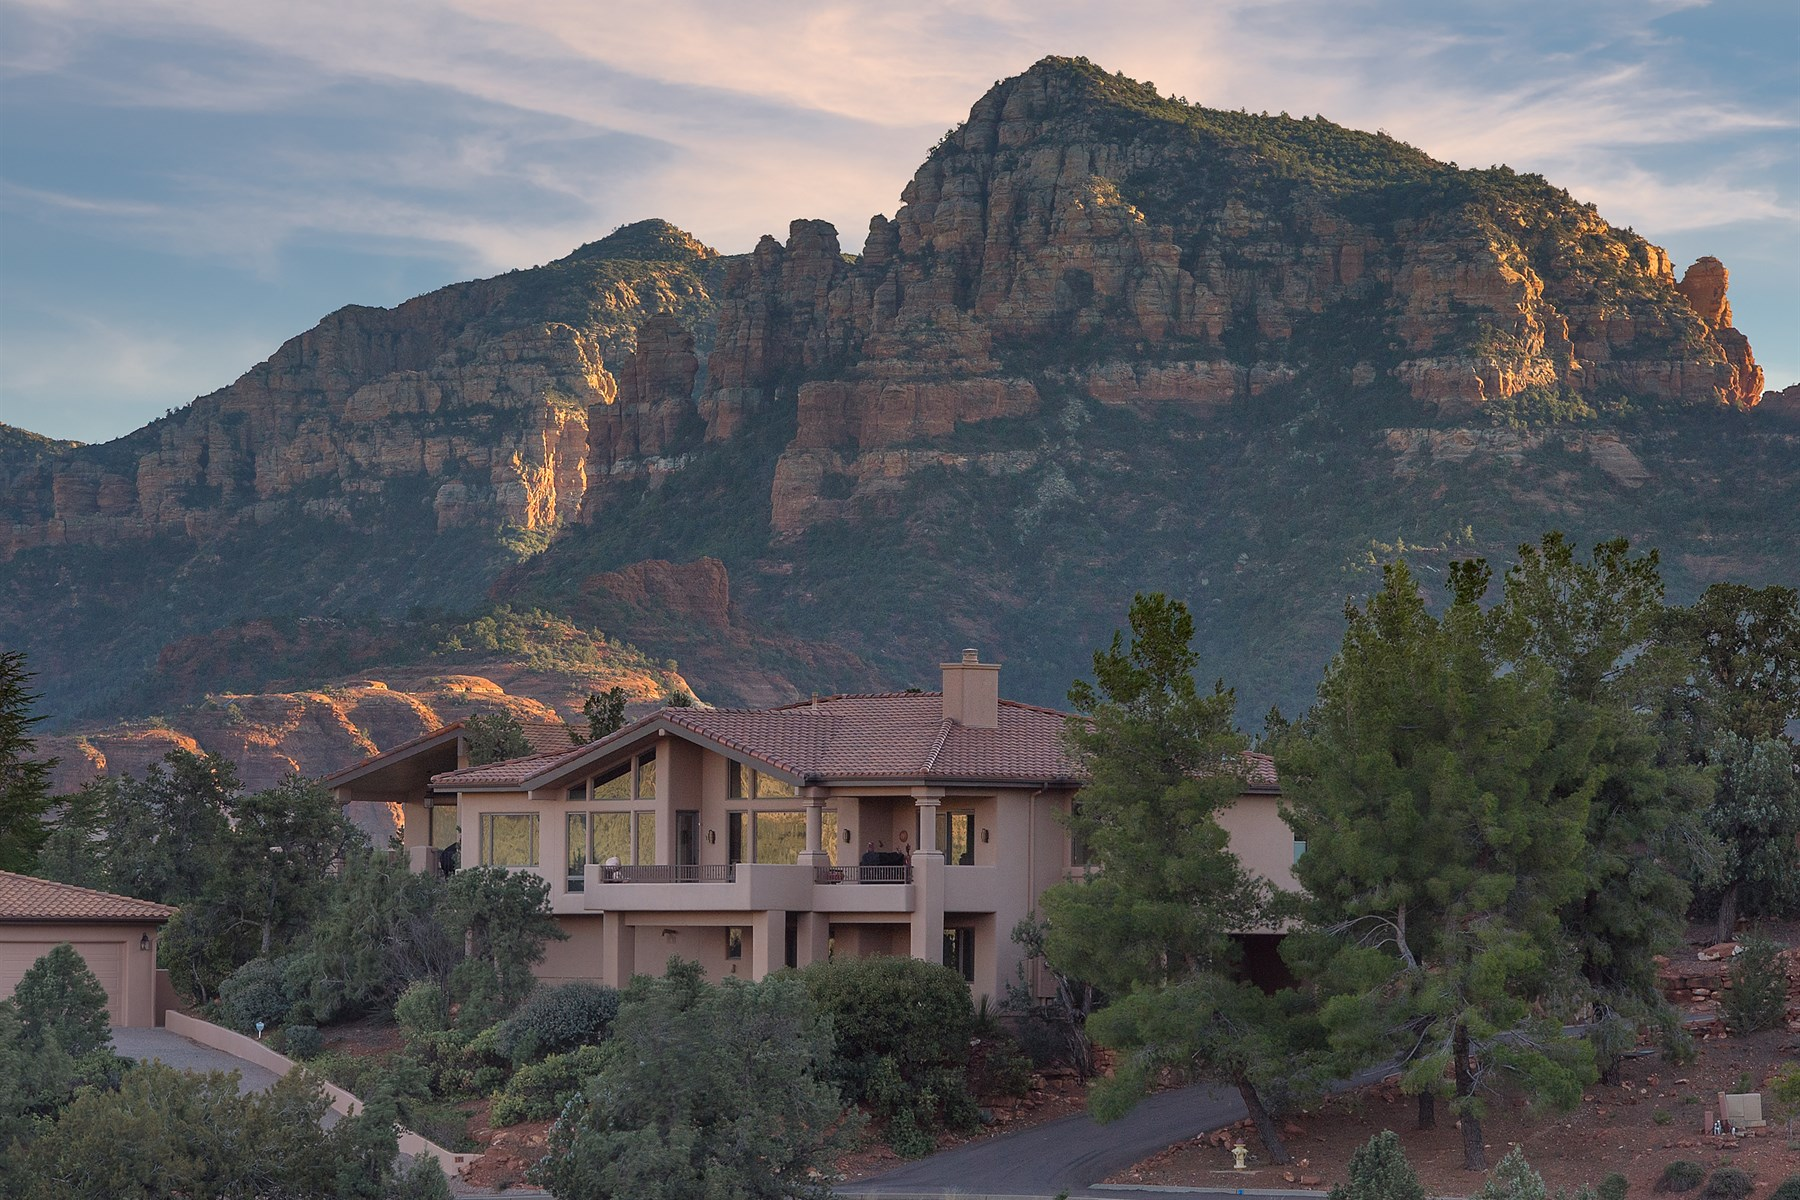 Casa Unifamiliar por un Venta en Southwest custom home with spectacular panoramic views 192 Les Springs Ln Sedona, Arizona, 86336 Estados Unidos